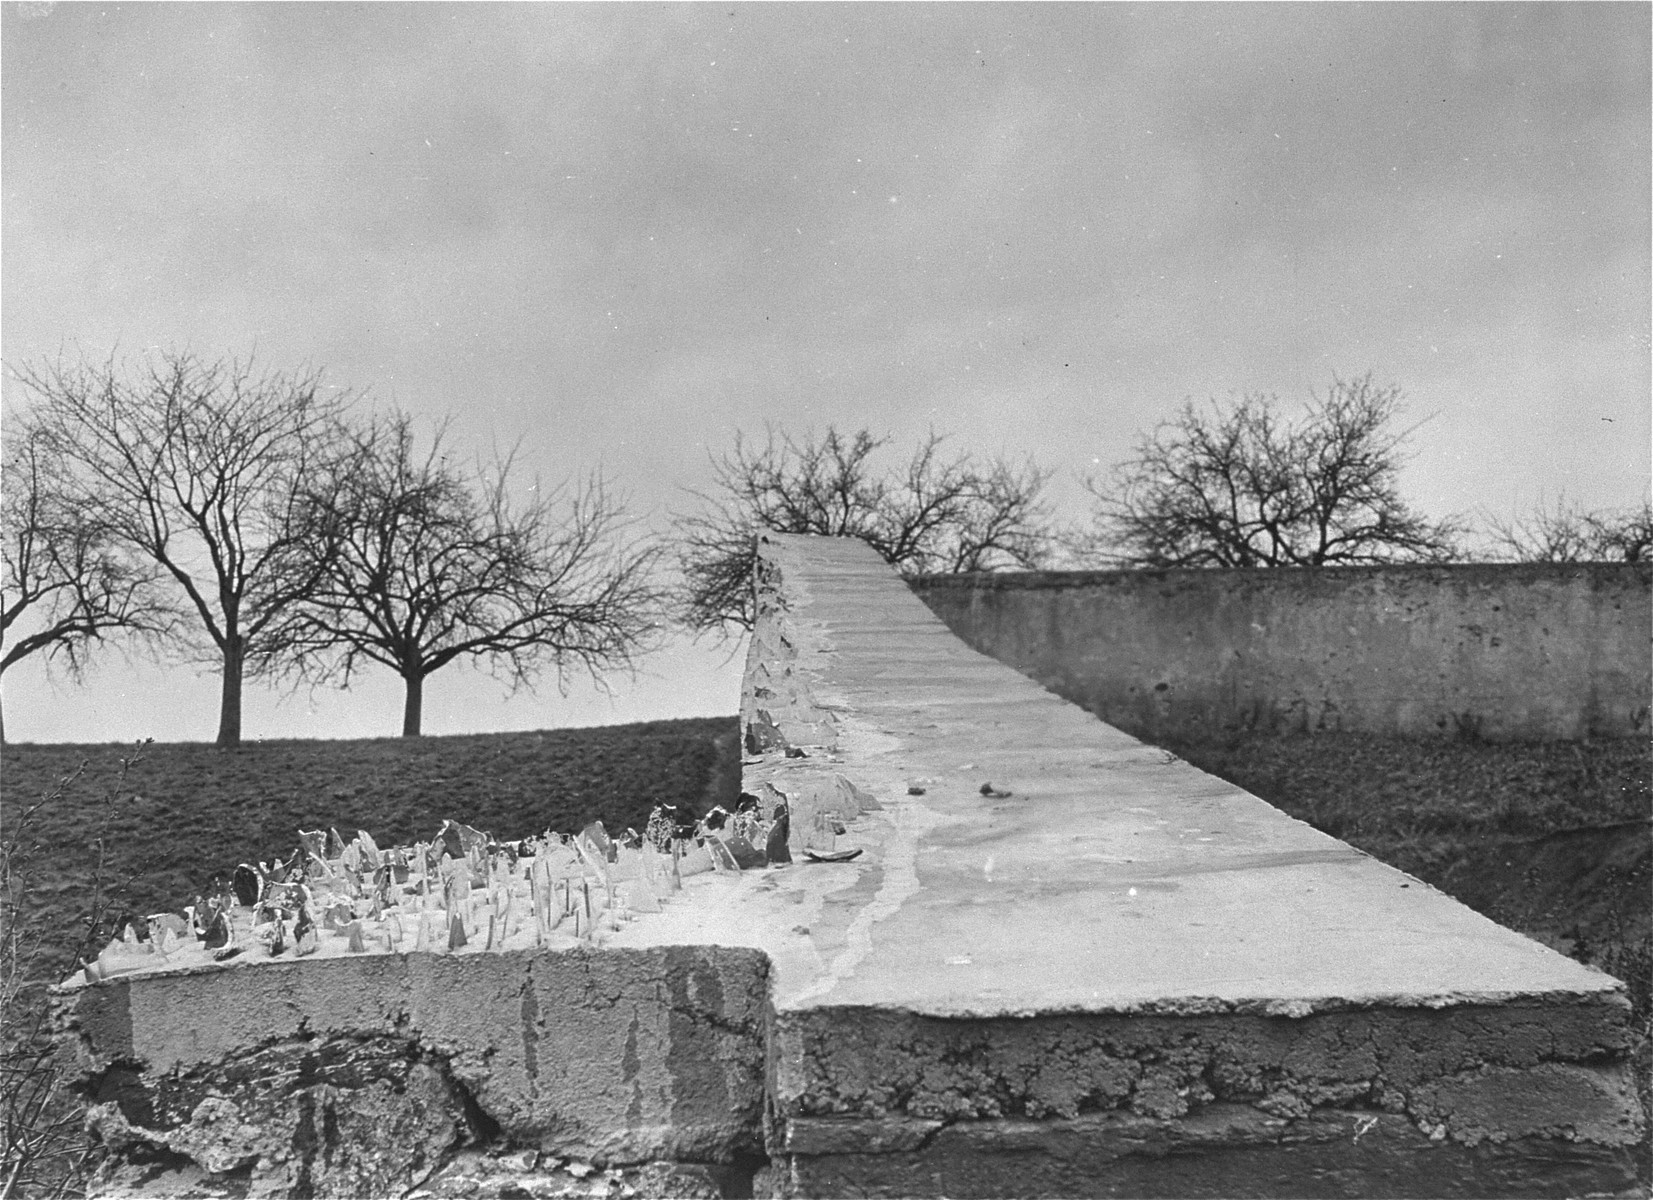 View of the wall surrounding the cemetery of the Hadamar Institute on which jagged pieces of glass were placed to discourage observers.  The photograph was taken by an American military photographer soon after the liberation.